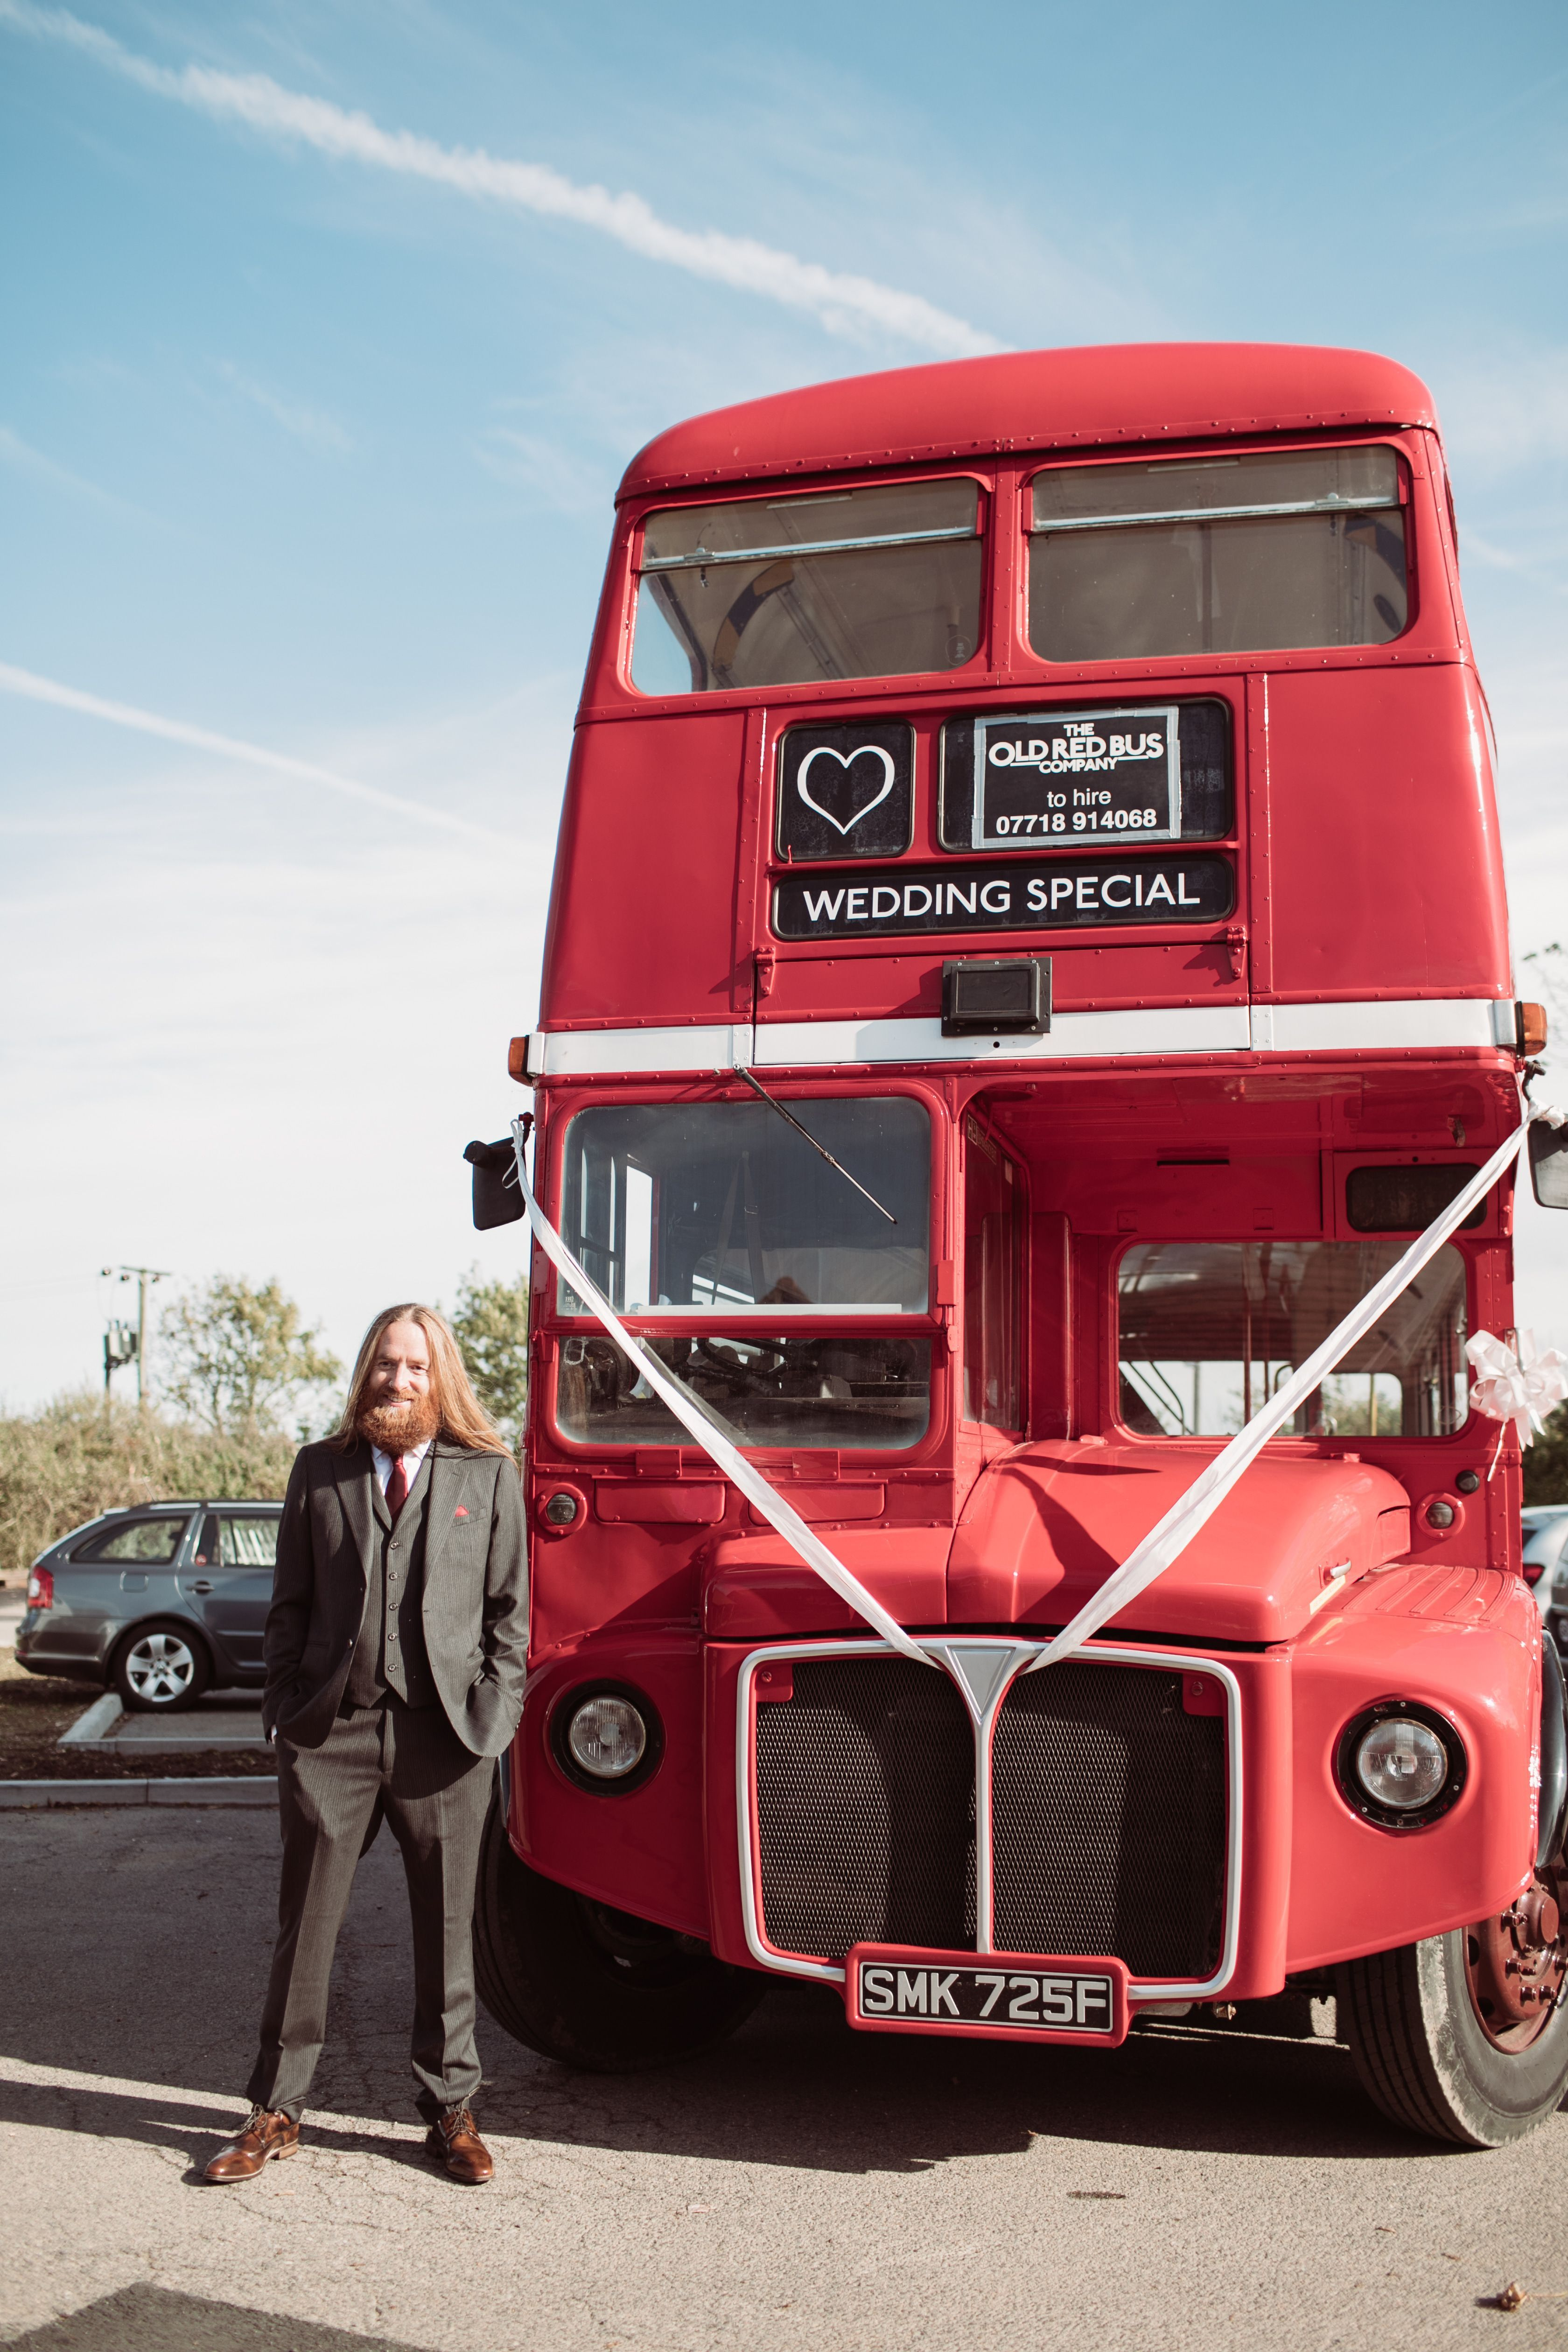 Kent Barn Wedding Venue London bus to bring your guests ...